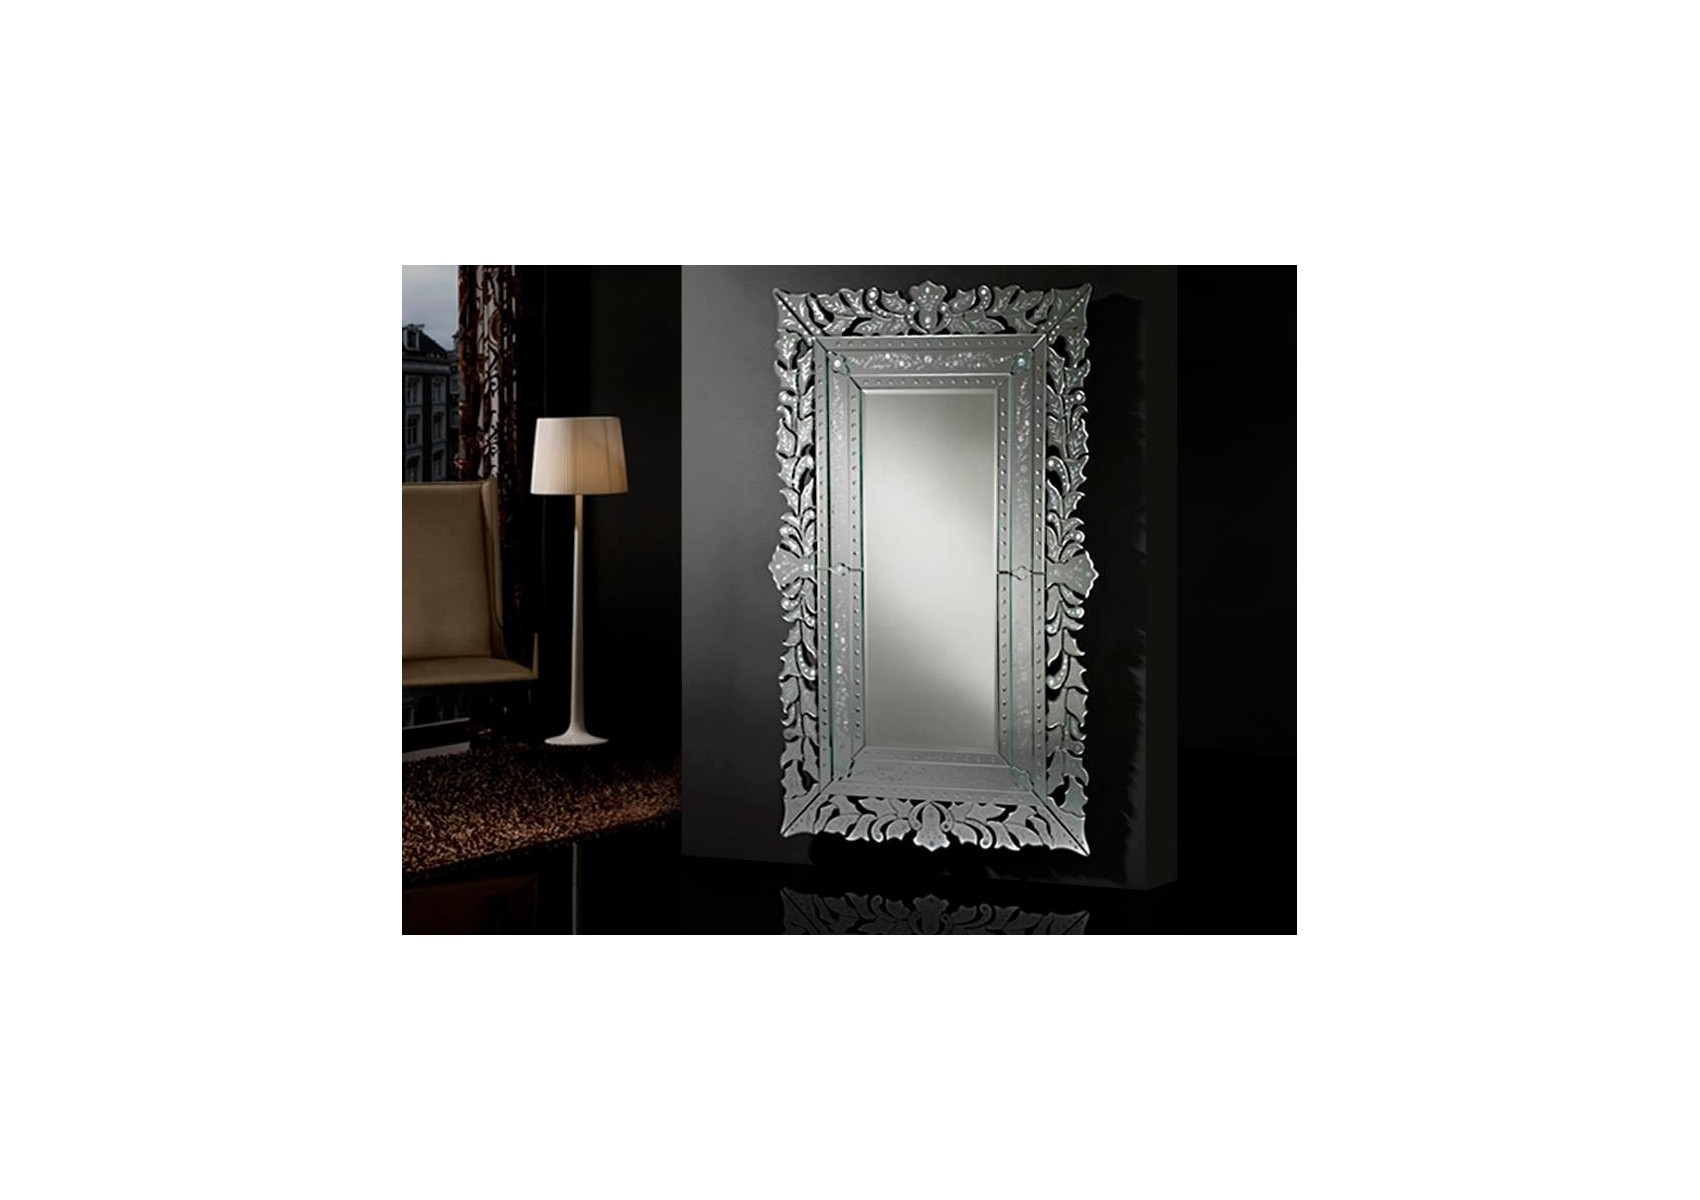 miroir original design grand cleopatra deco schuller boite design. Black Bedroom Furniture Sets. Home Design Ideas